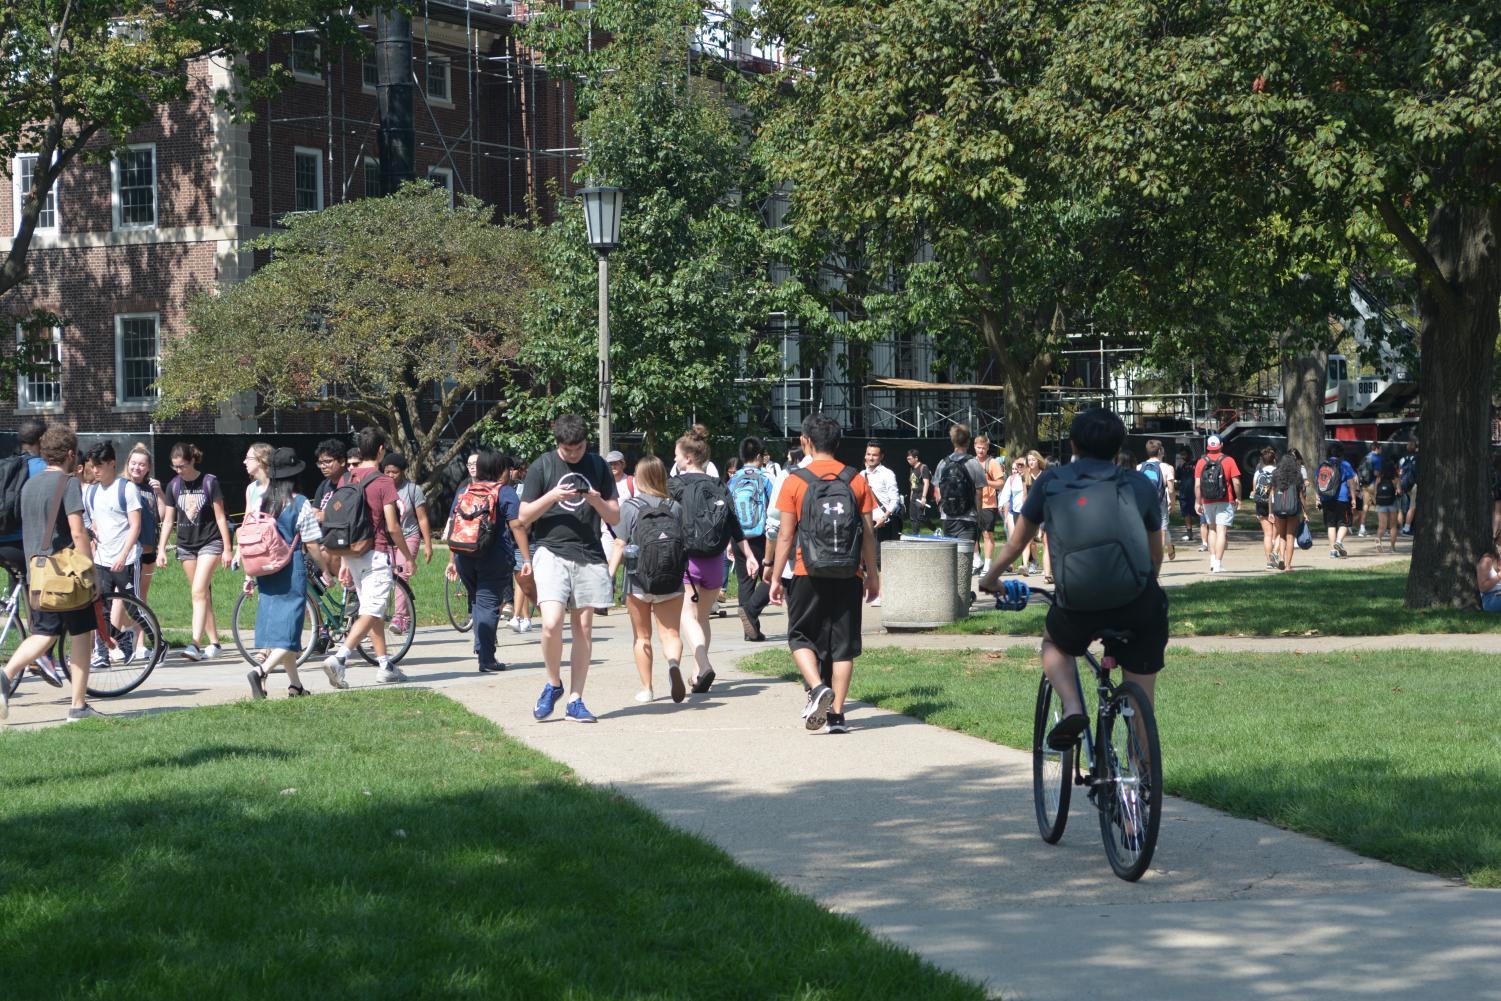 Students walk to and from class on the Main Quad in Urbana, Illinois.